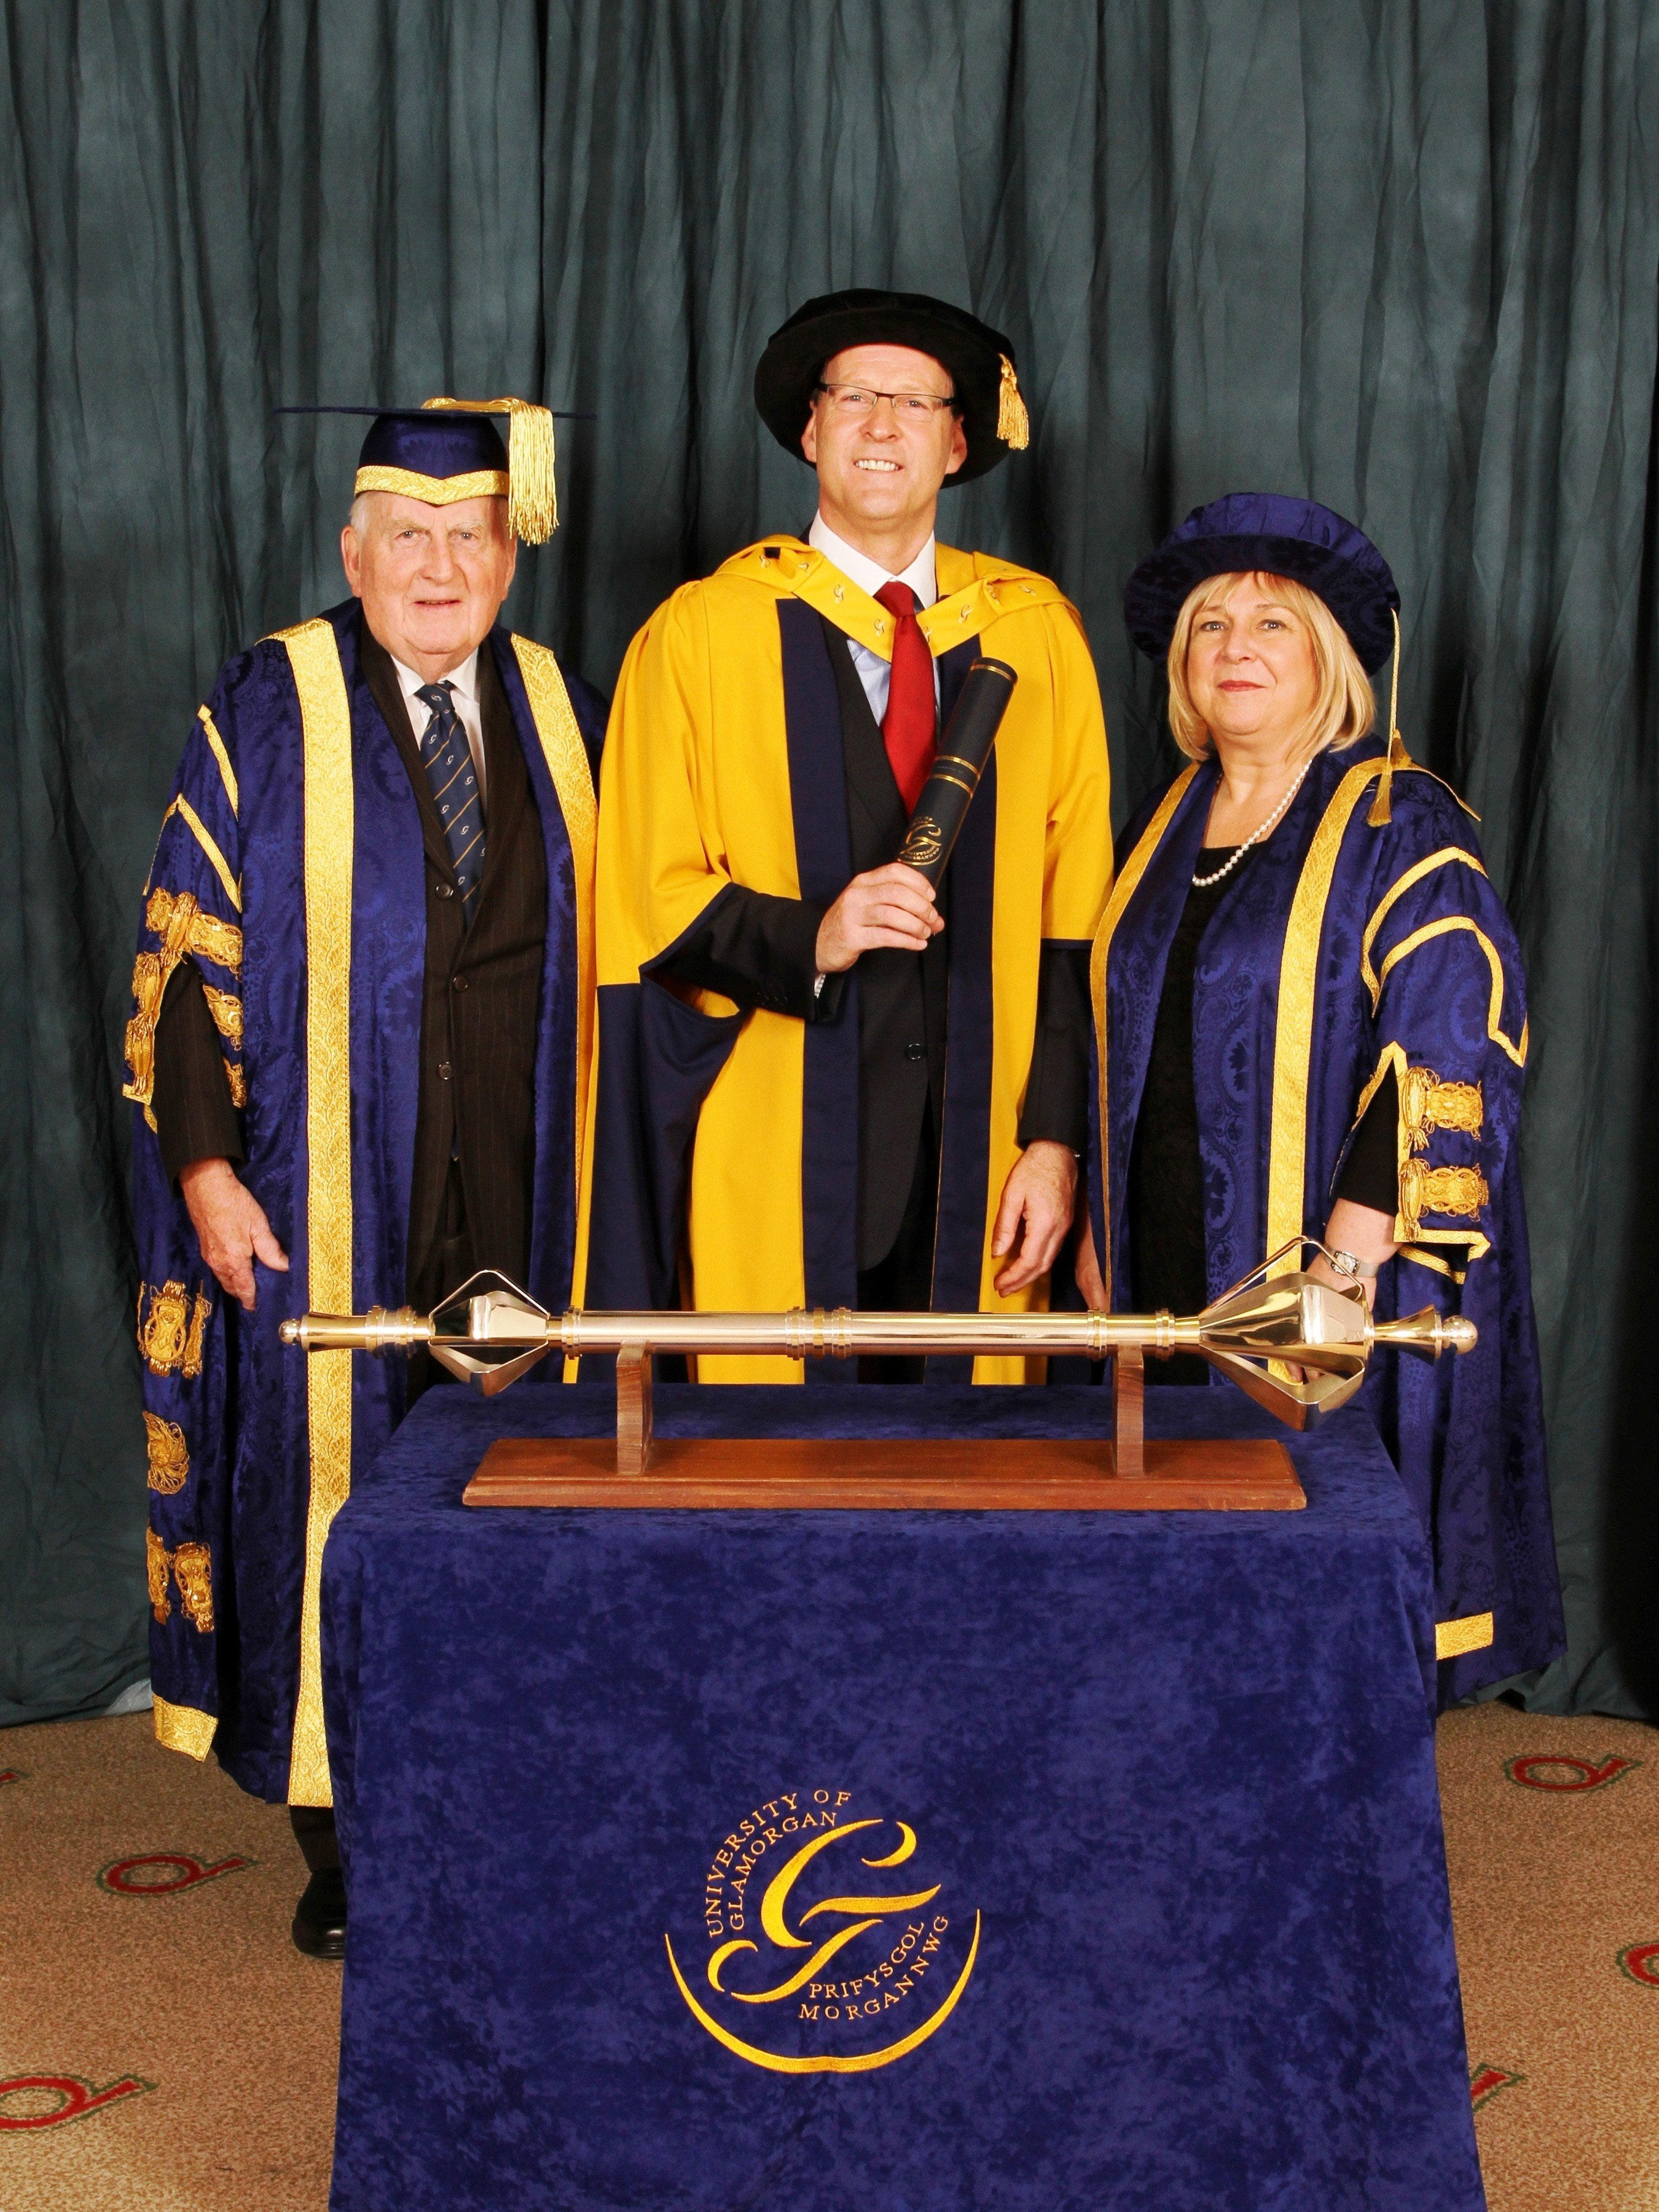 Steve Dalton OBE, Honorary Fellowship